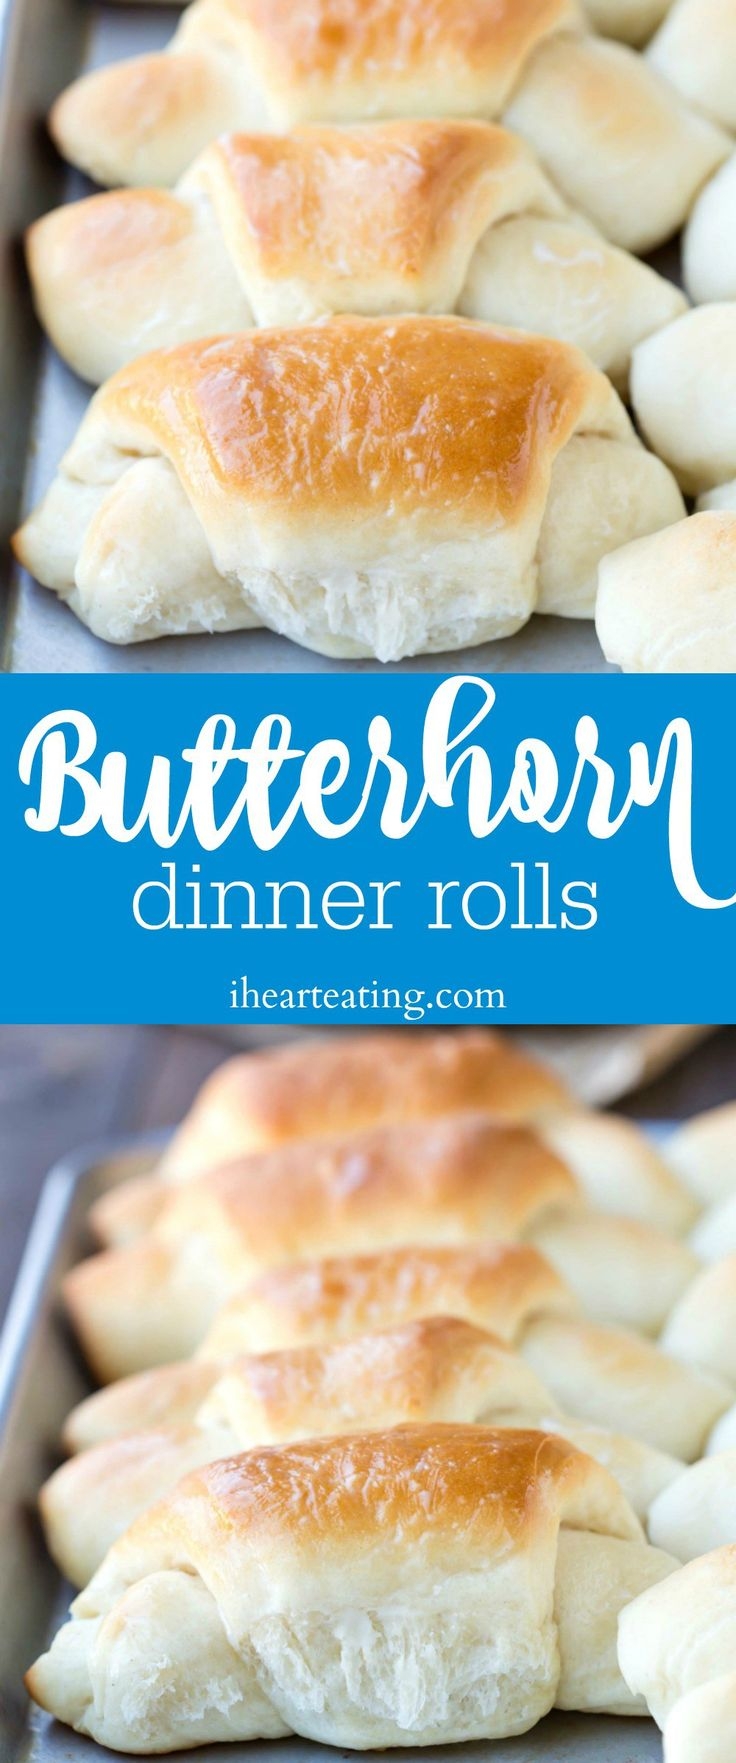 Butterhorn Dinner Roll Recipe - soft and sweet classic dinner rolls that are perfect for Easter dinner, Christmas dinner, or for Thanksgiving!